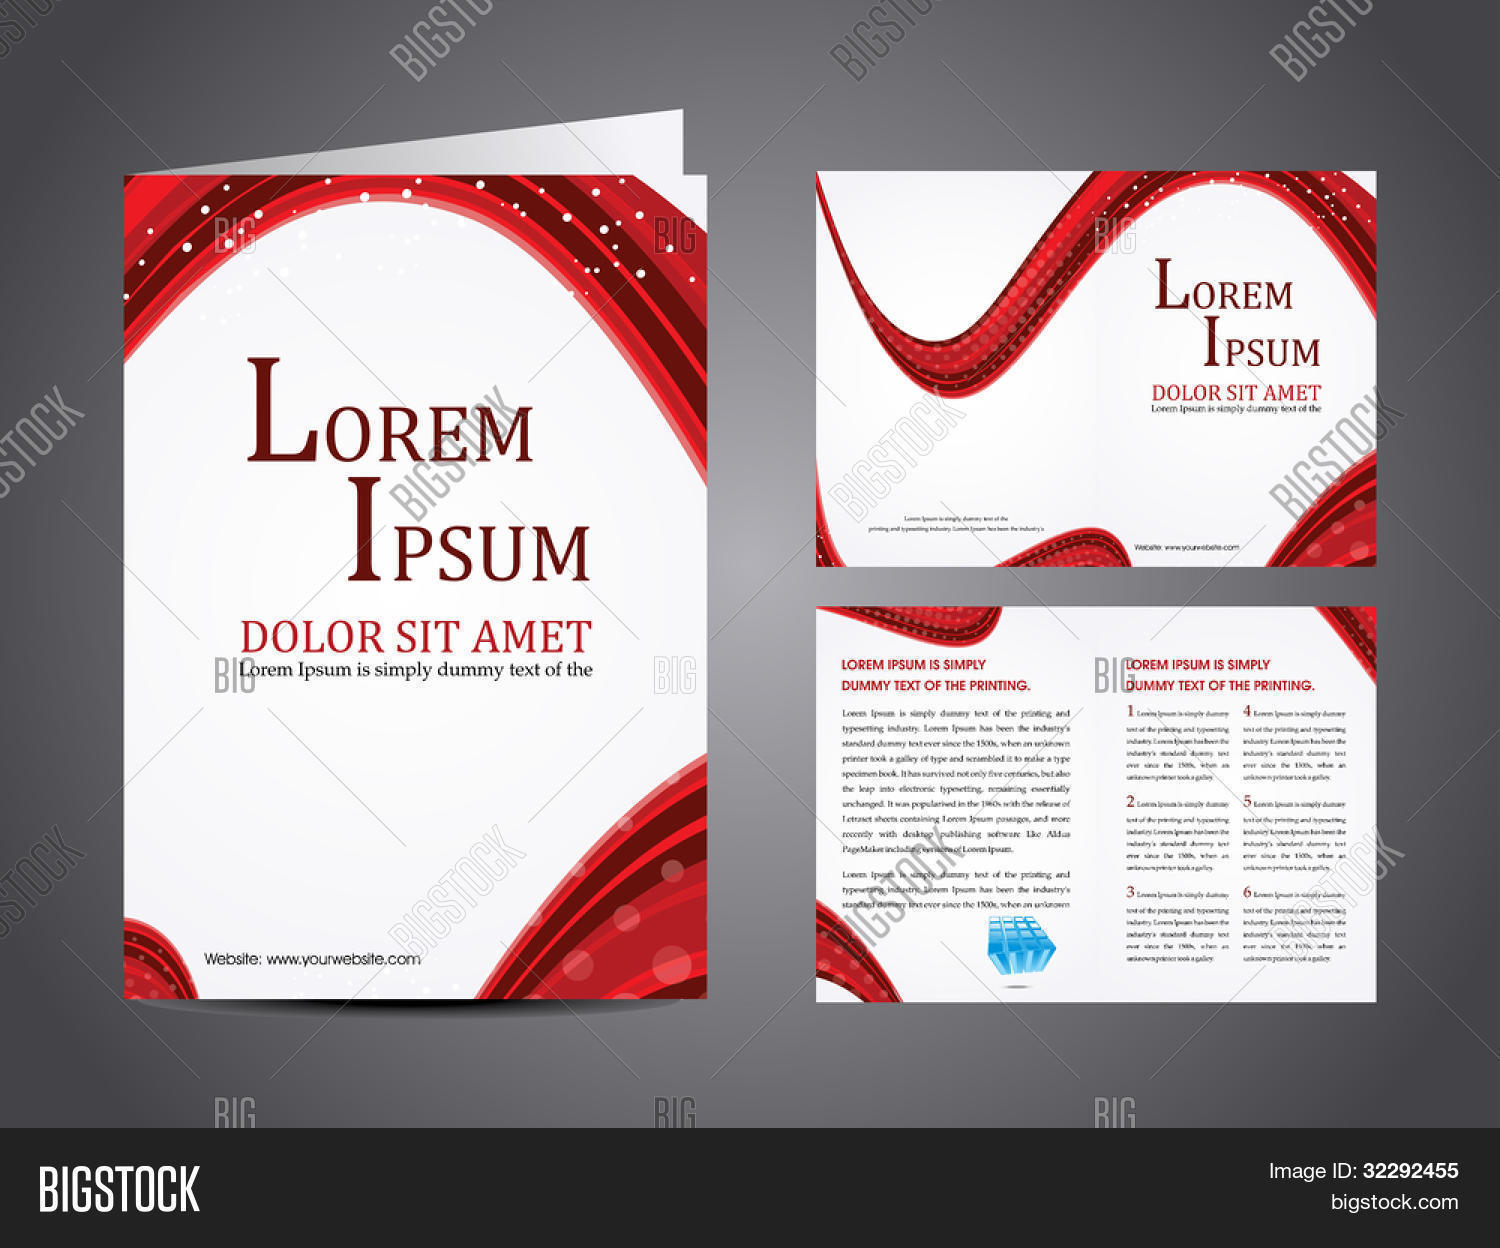 Professional business vector photo free trial bigstock professional business catalog template or corporate brochure design with inner pages for document publishing accmission Image collections